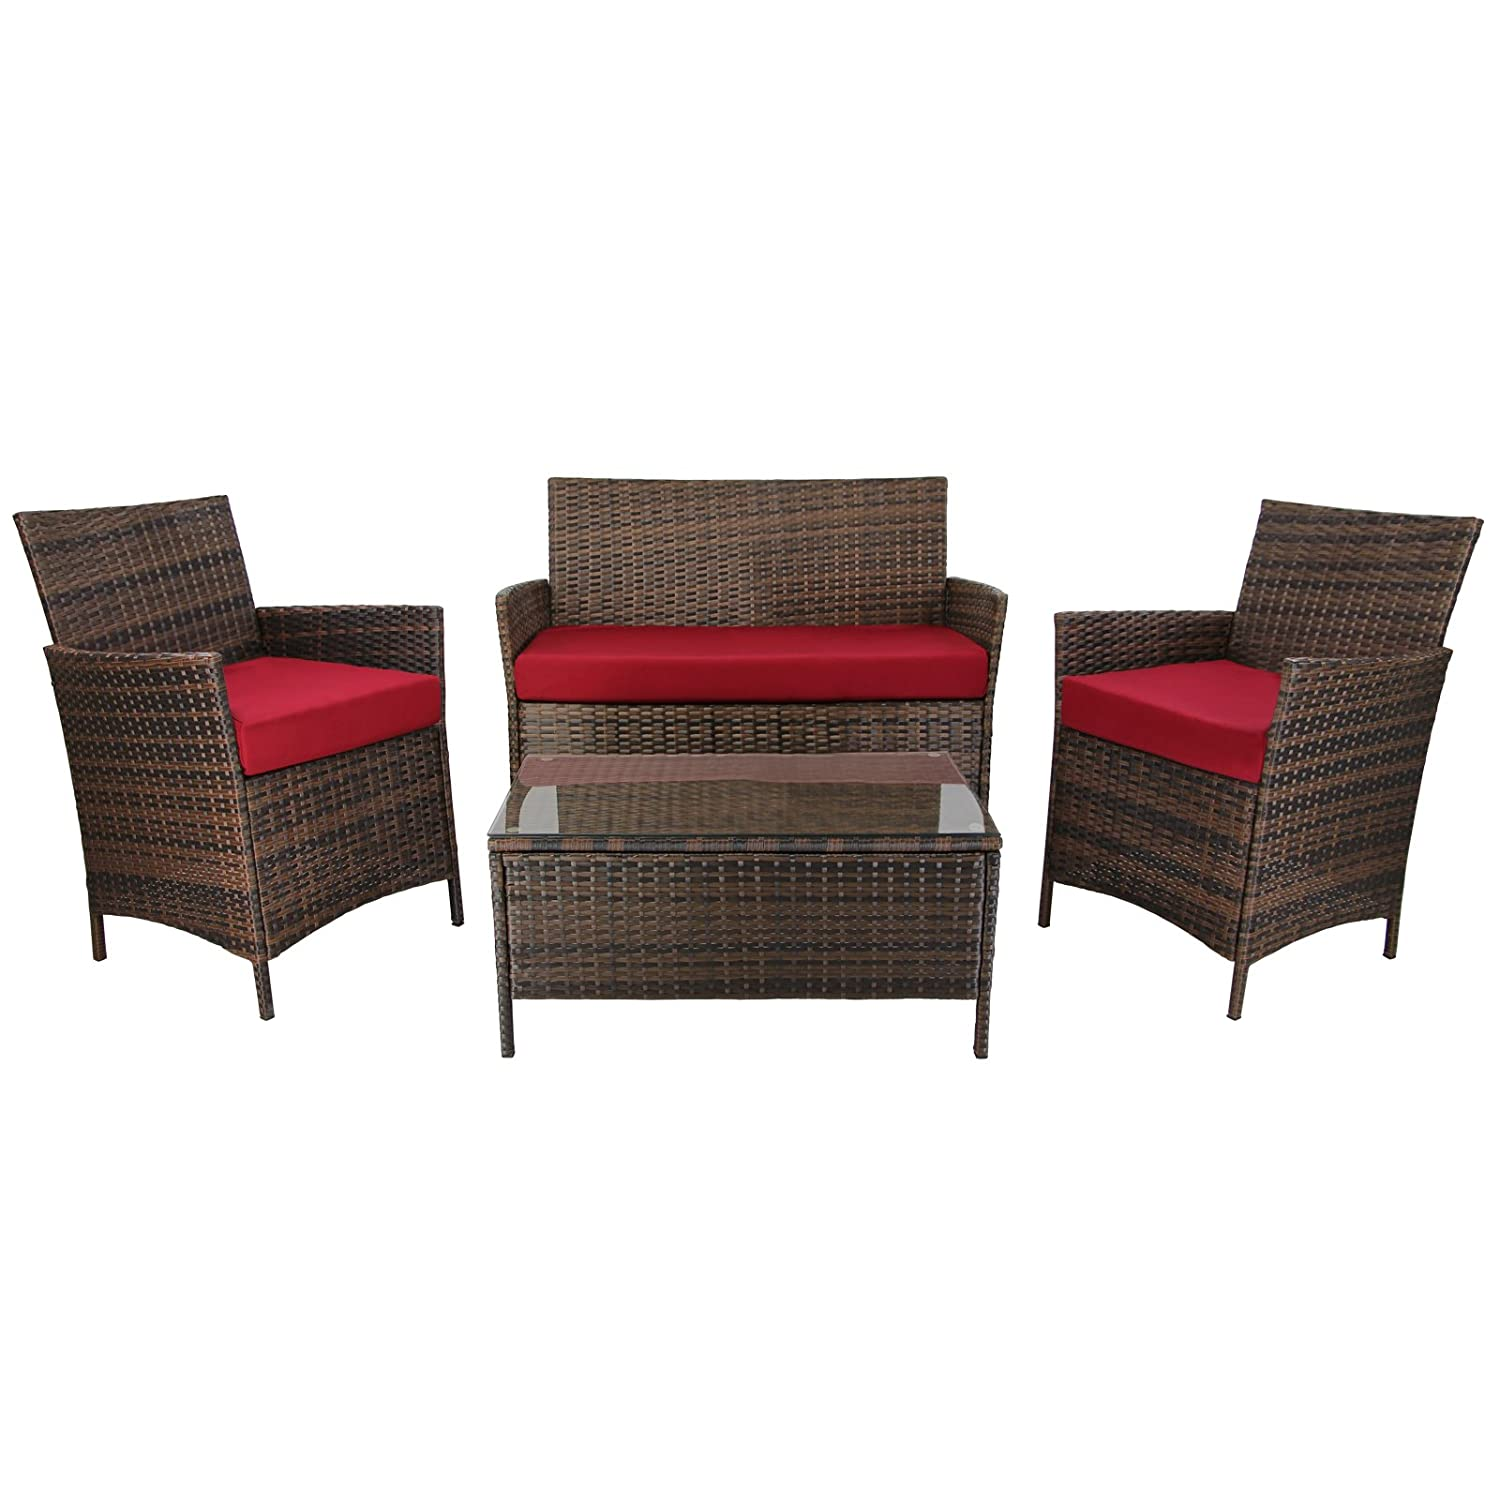 7 teilige rattan sitzgruppe lounge kuba lounge set poly for Lounge set rattan gunstig